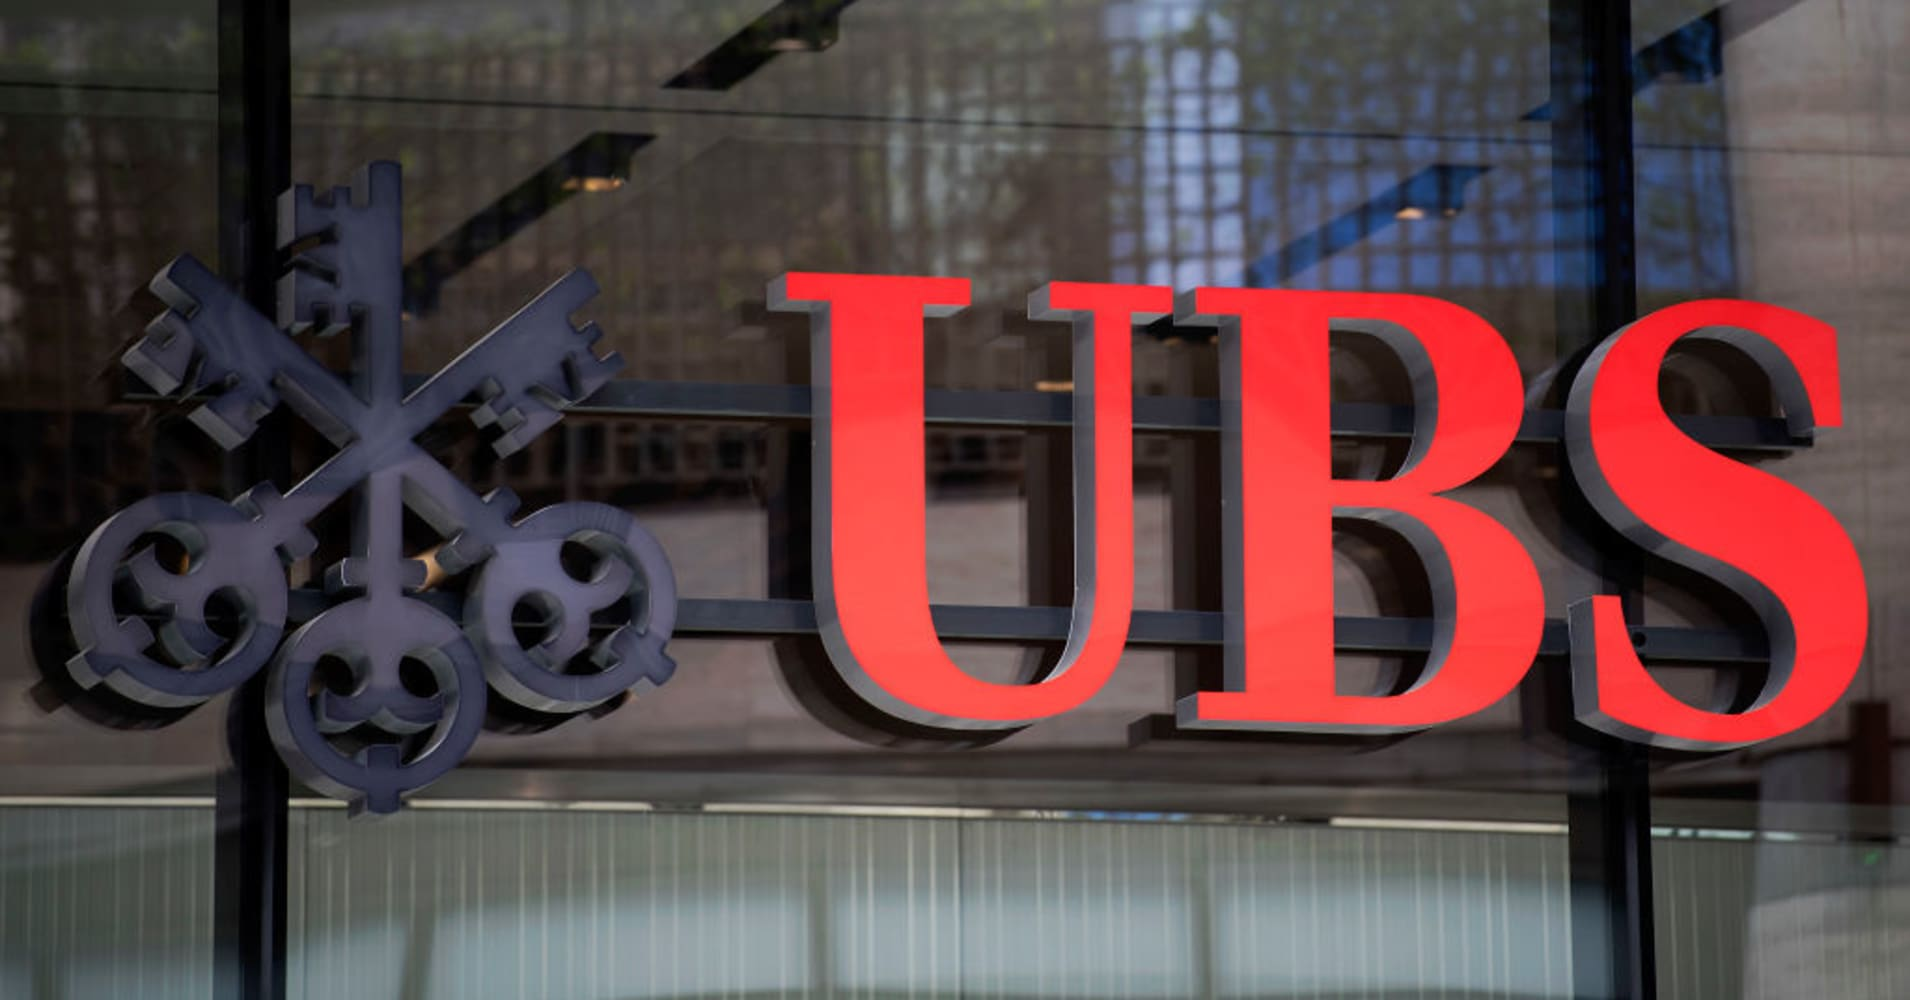 UBS said to warn staff over China travel after banker held in Beijing